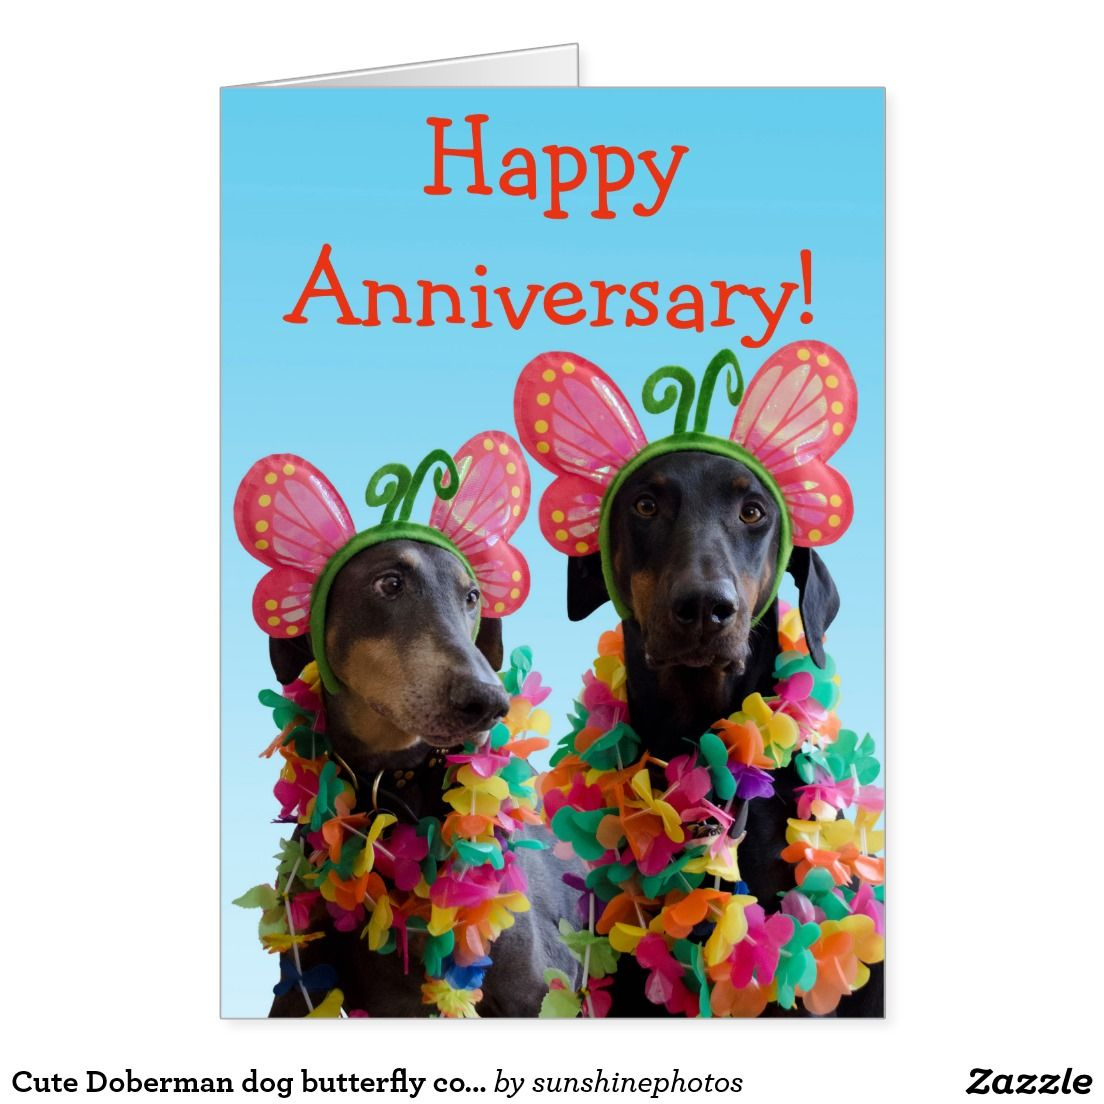 Cute Doberman dog butterfly couple anniversary Card